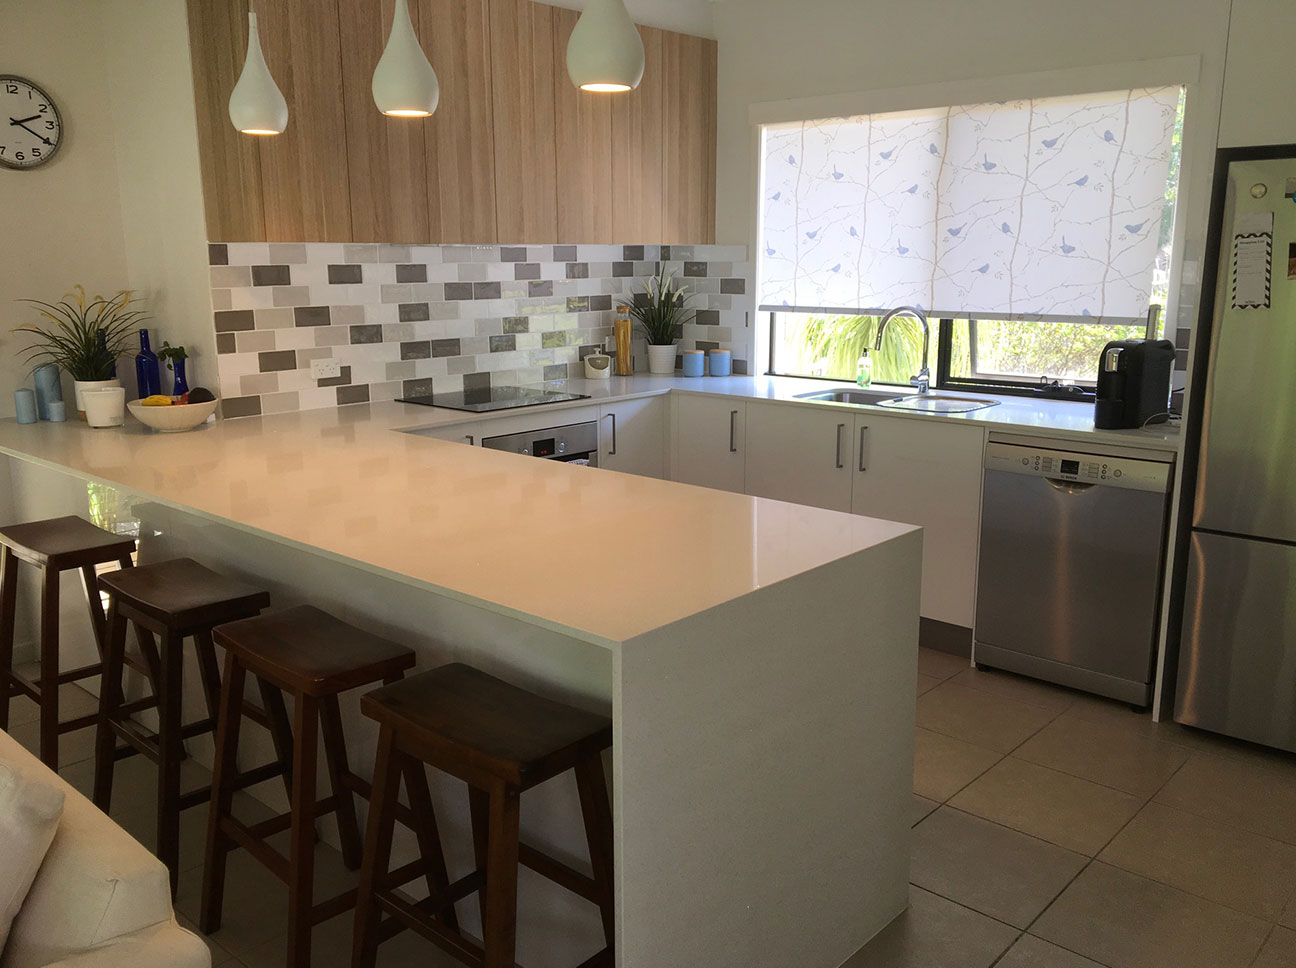 Kitchen Renovations - Gold Coast - Kitchen Brokers Queensland - Rosemary & John - Sinnamon Park